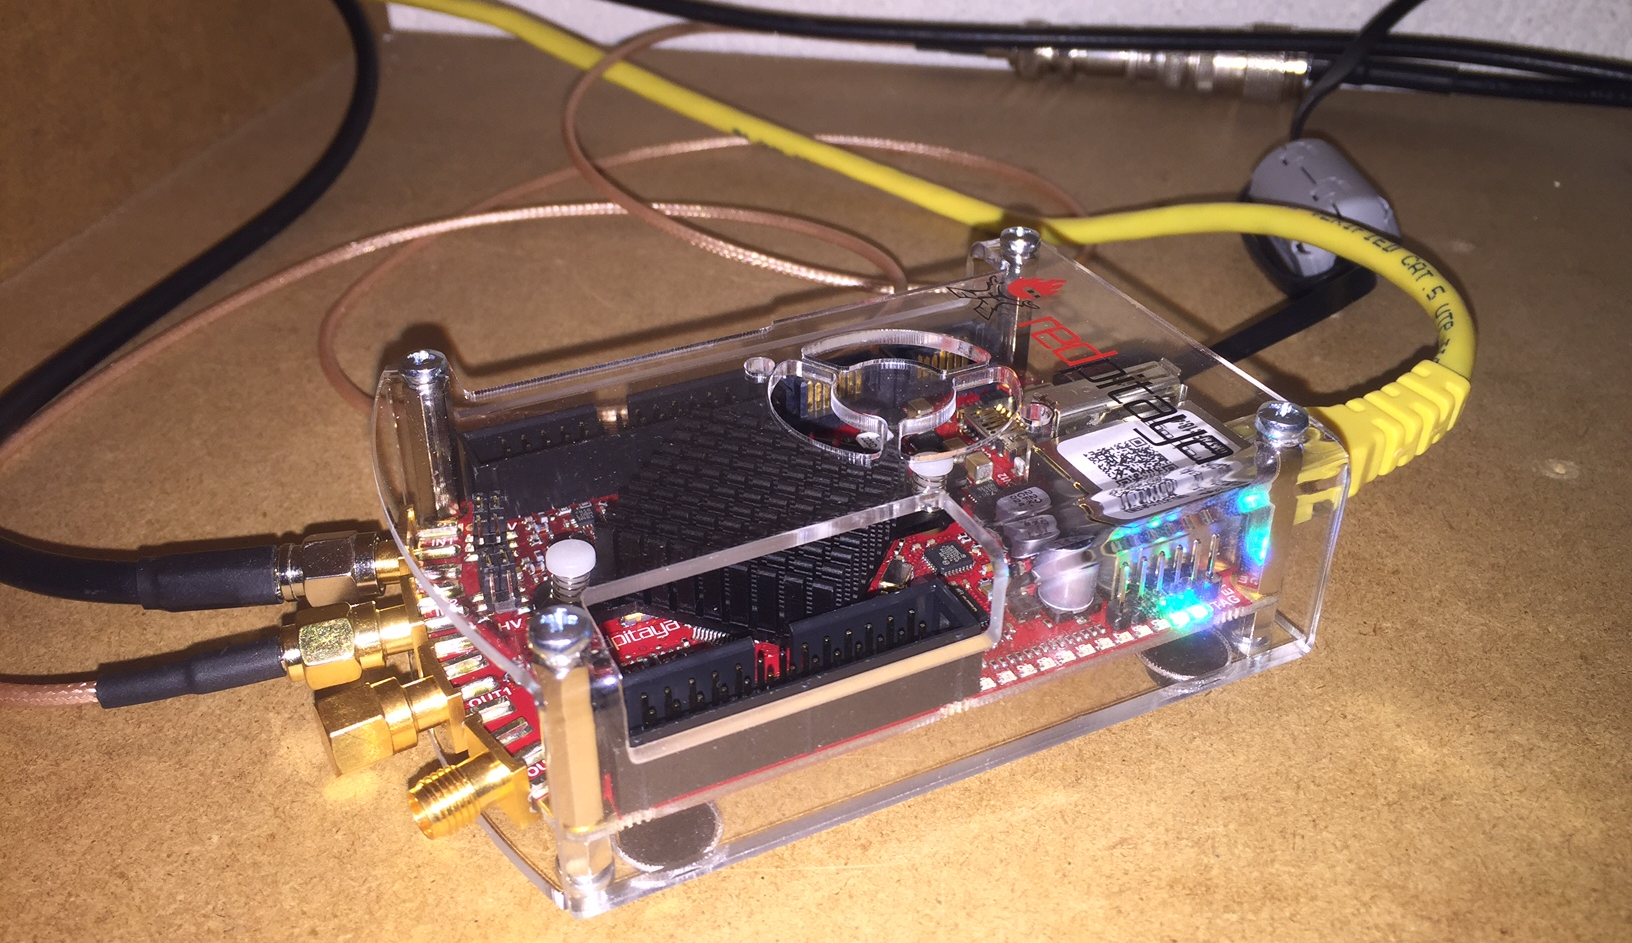 Red Pitaya - SDR Transceiver - PA3ANG - Dutch Ham Radio Station - Weblog